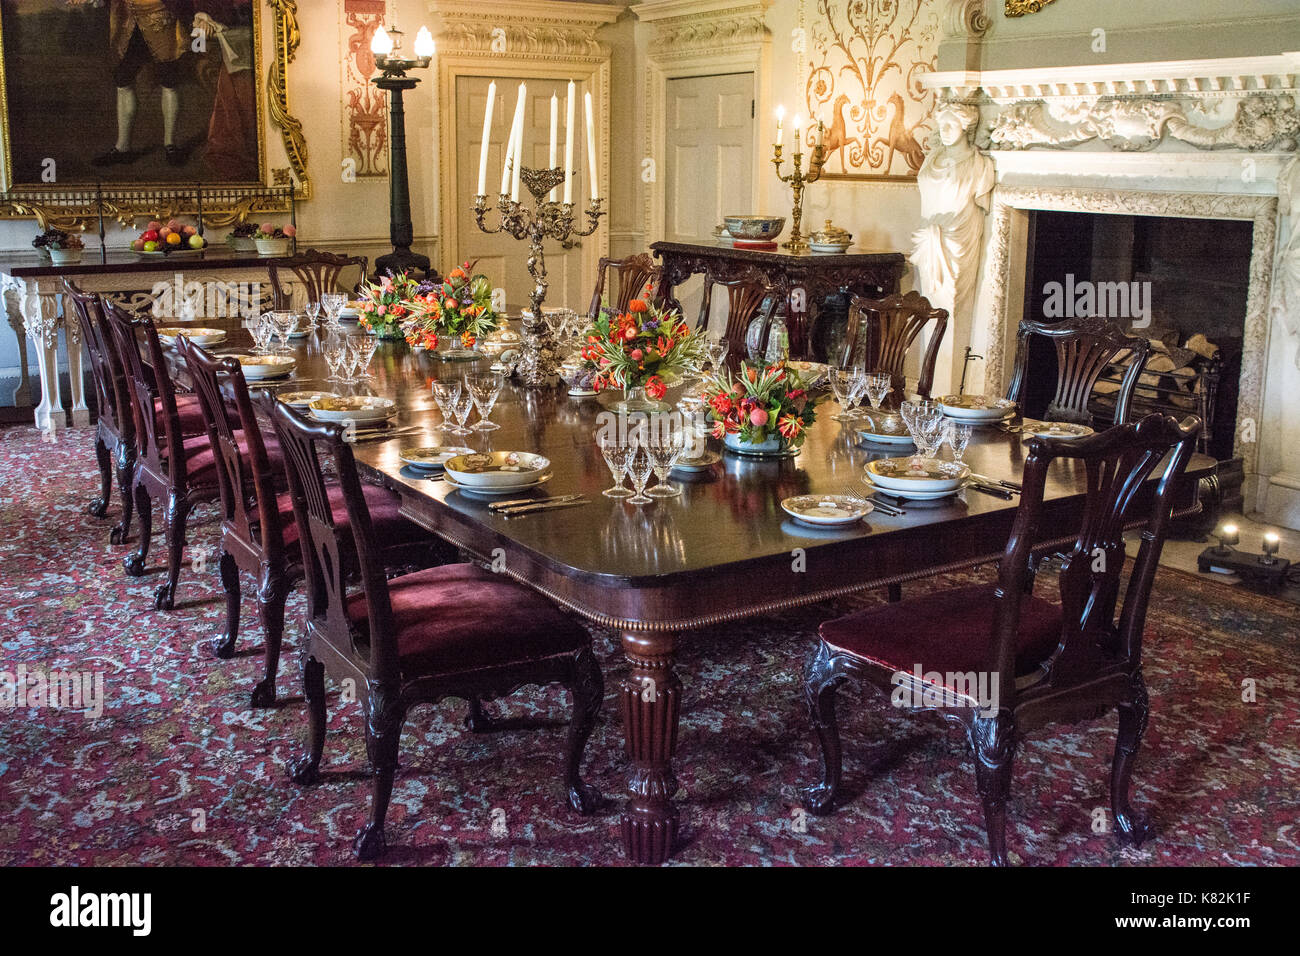 Regal Dining Room In English Stately Home Yorkshire England